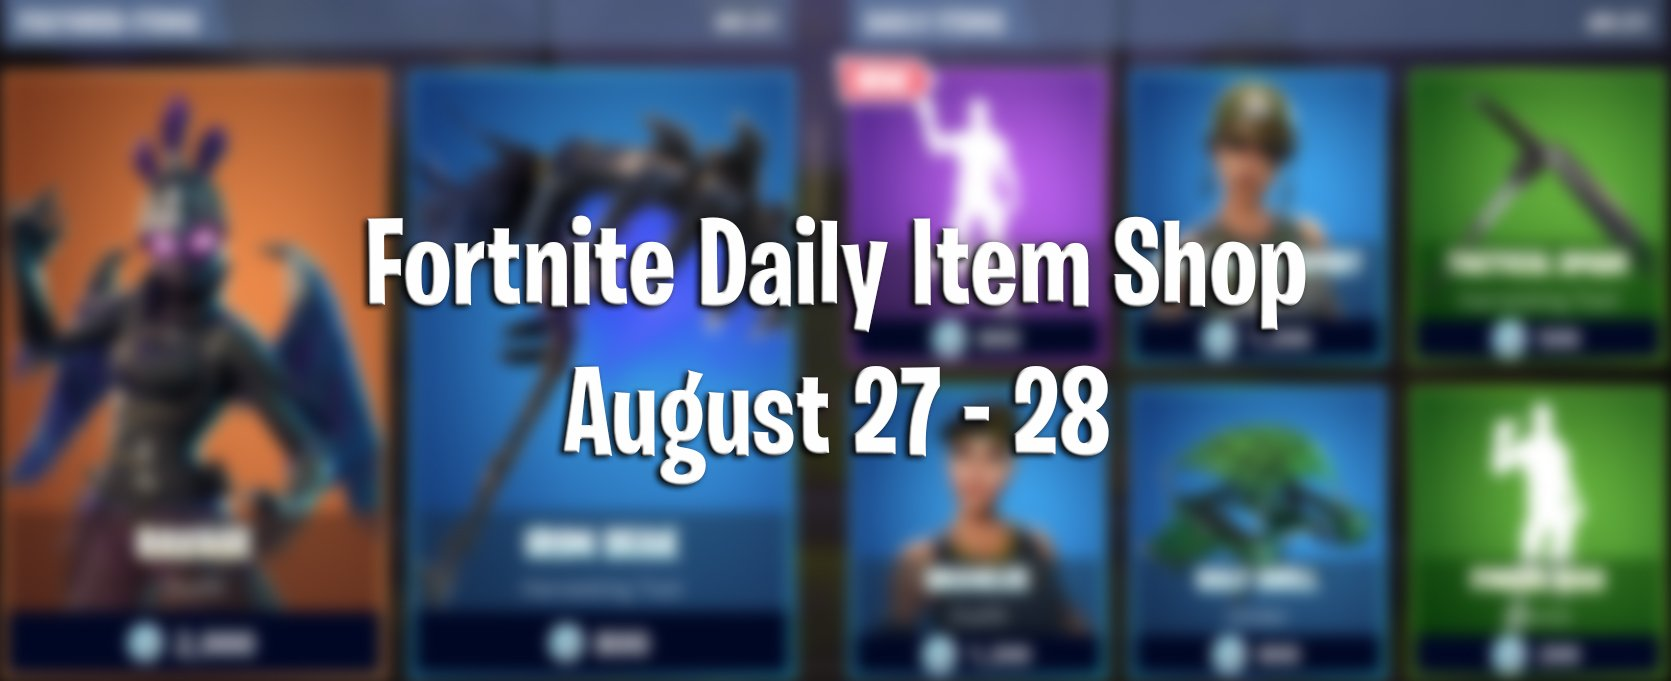 Fortnite Daily Item Shop And Items For Today August 27th To The 28th Uncommon, rare, epic or legendary. fortnite daily item shop and items for